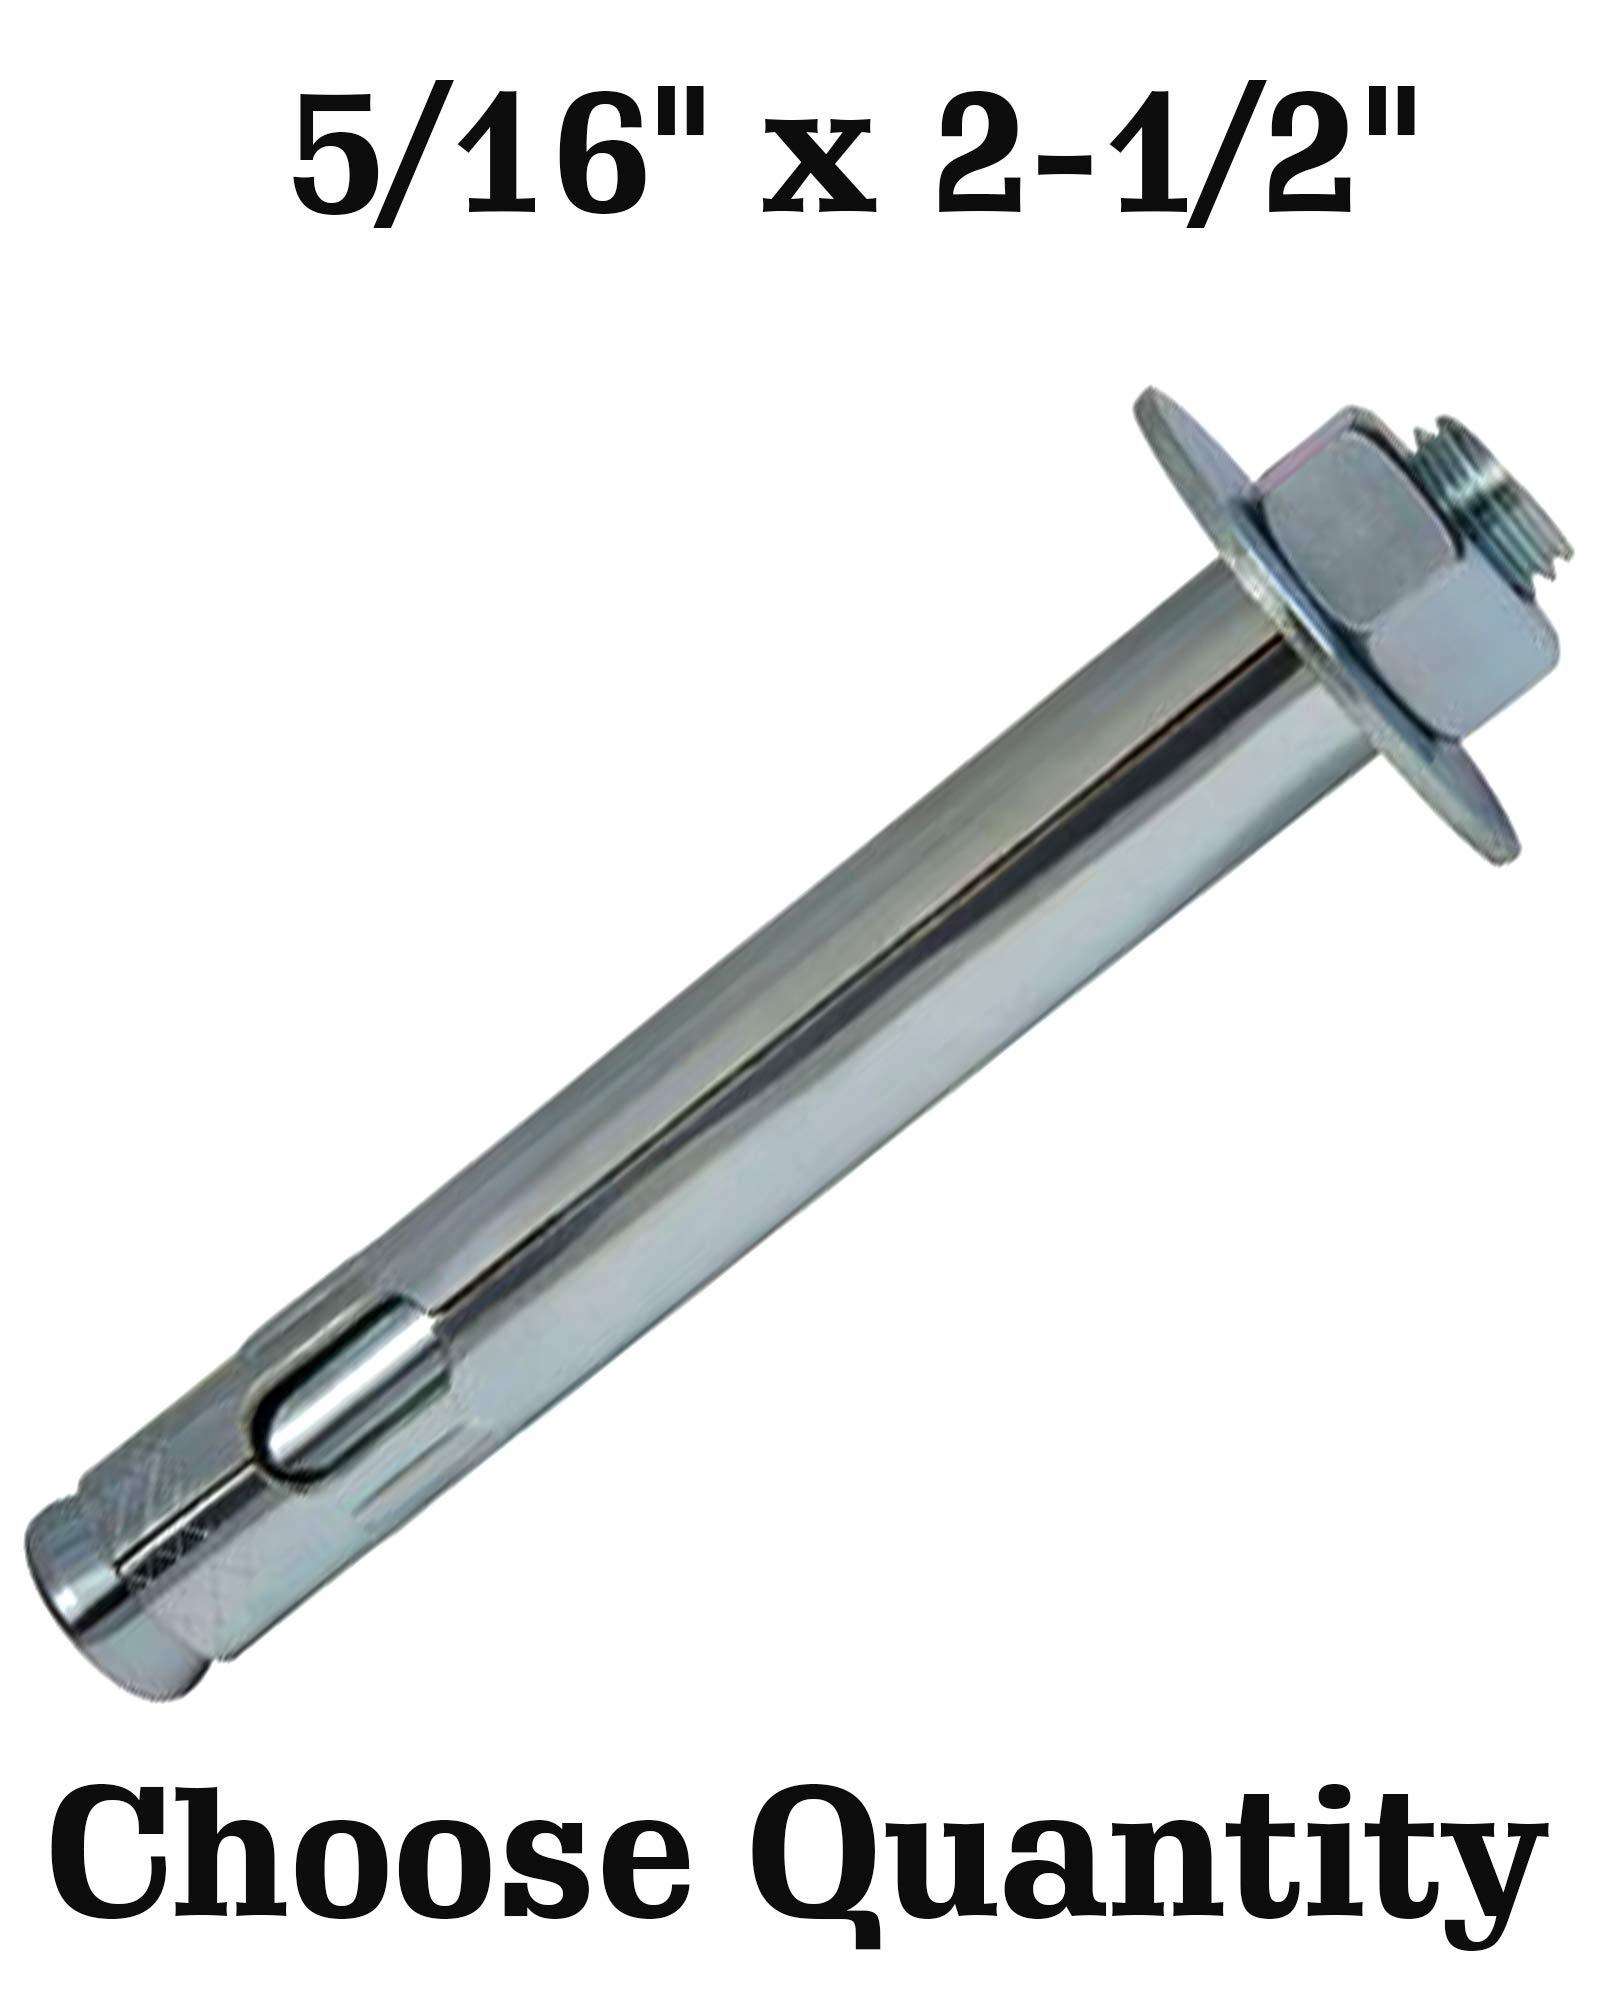 Sleeve Anchor 5/16-Inch by 2-1/2-Inch - Hex Head Sleeve Anchors Concrete Bolts Concrete Sleeve Anchors (100)